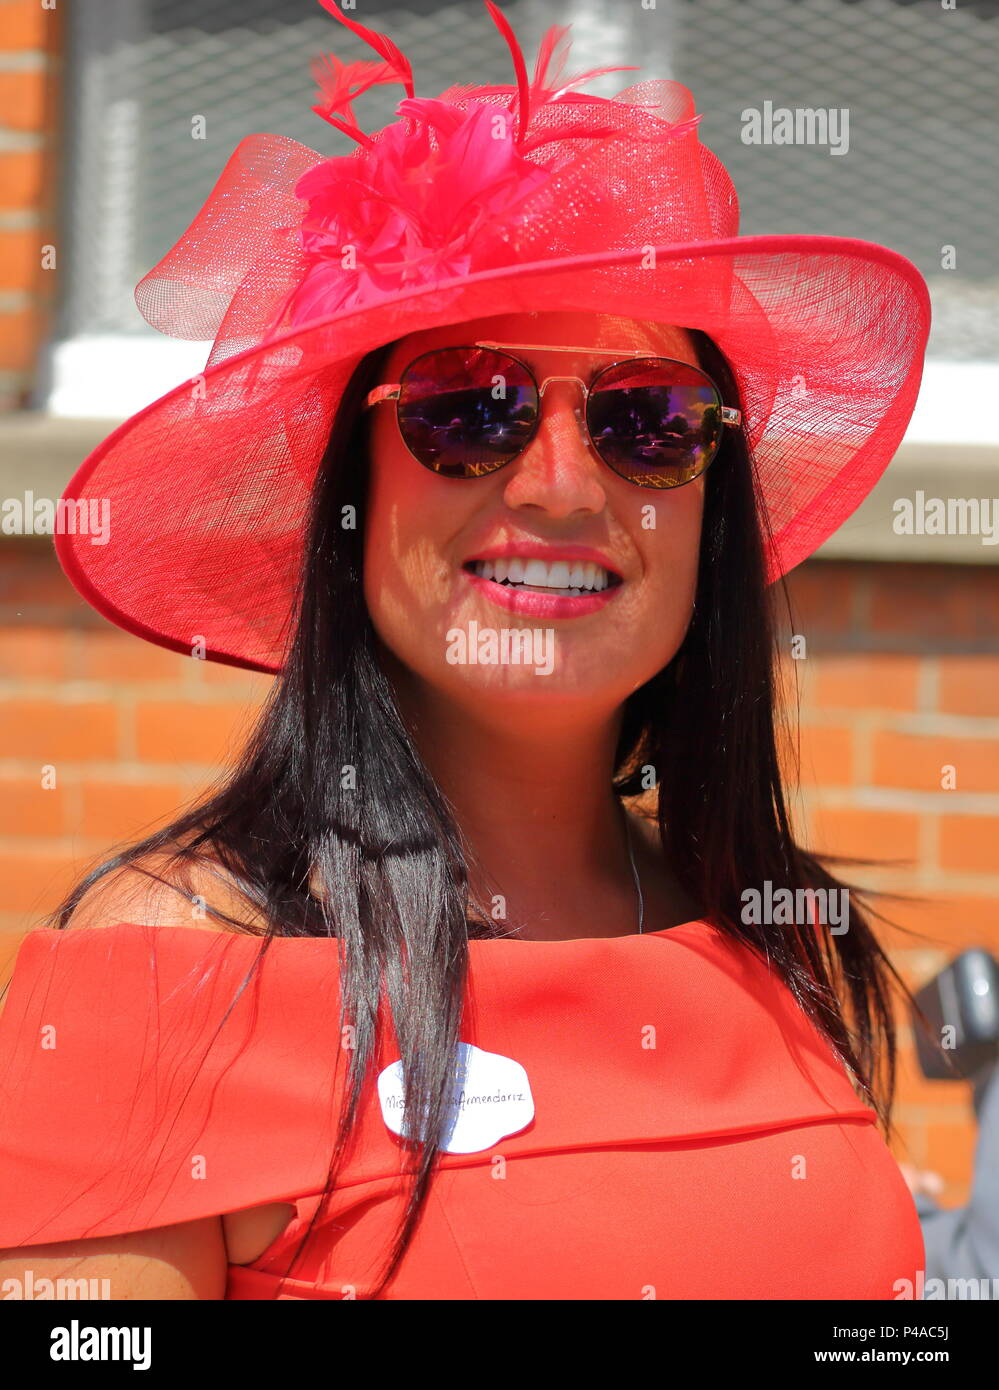 Ascot, UK. 21st June 2018. Ladies put on a glamourous display at this year's races as they arrive for a good day out. Credit: Uwe Deffner/Alamy Live News - Stock Image